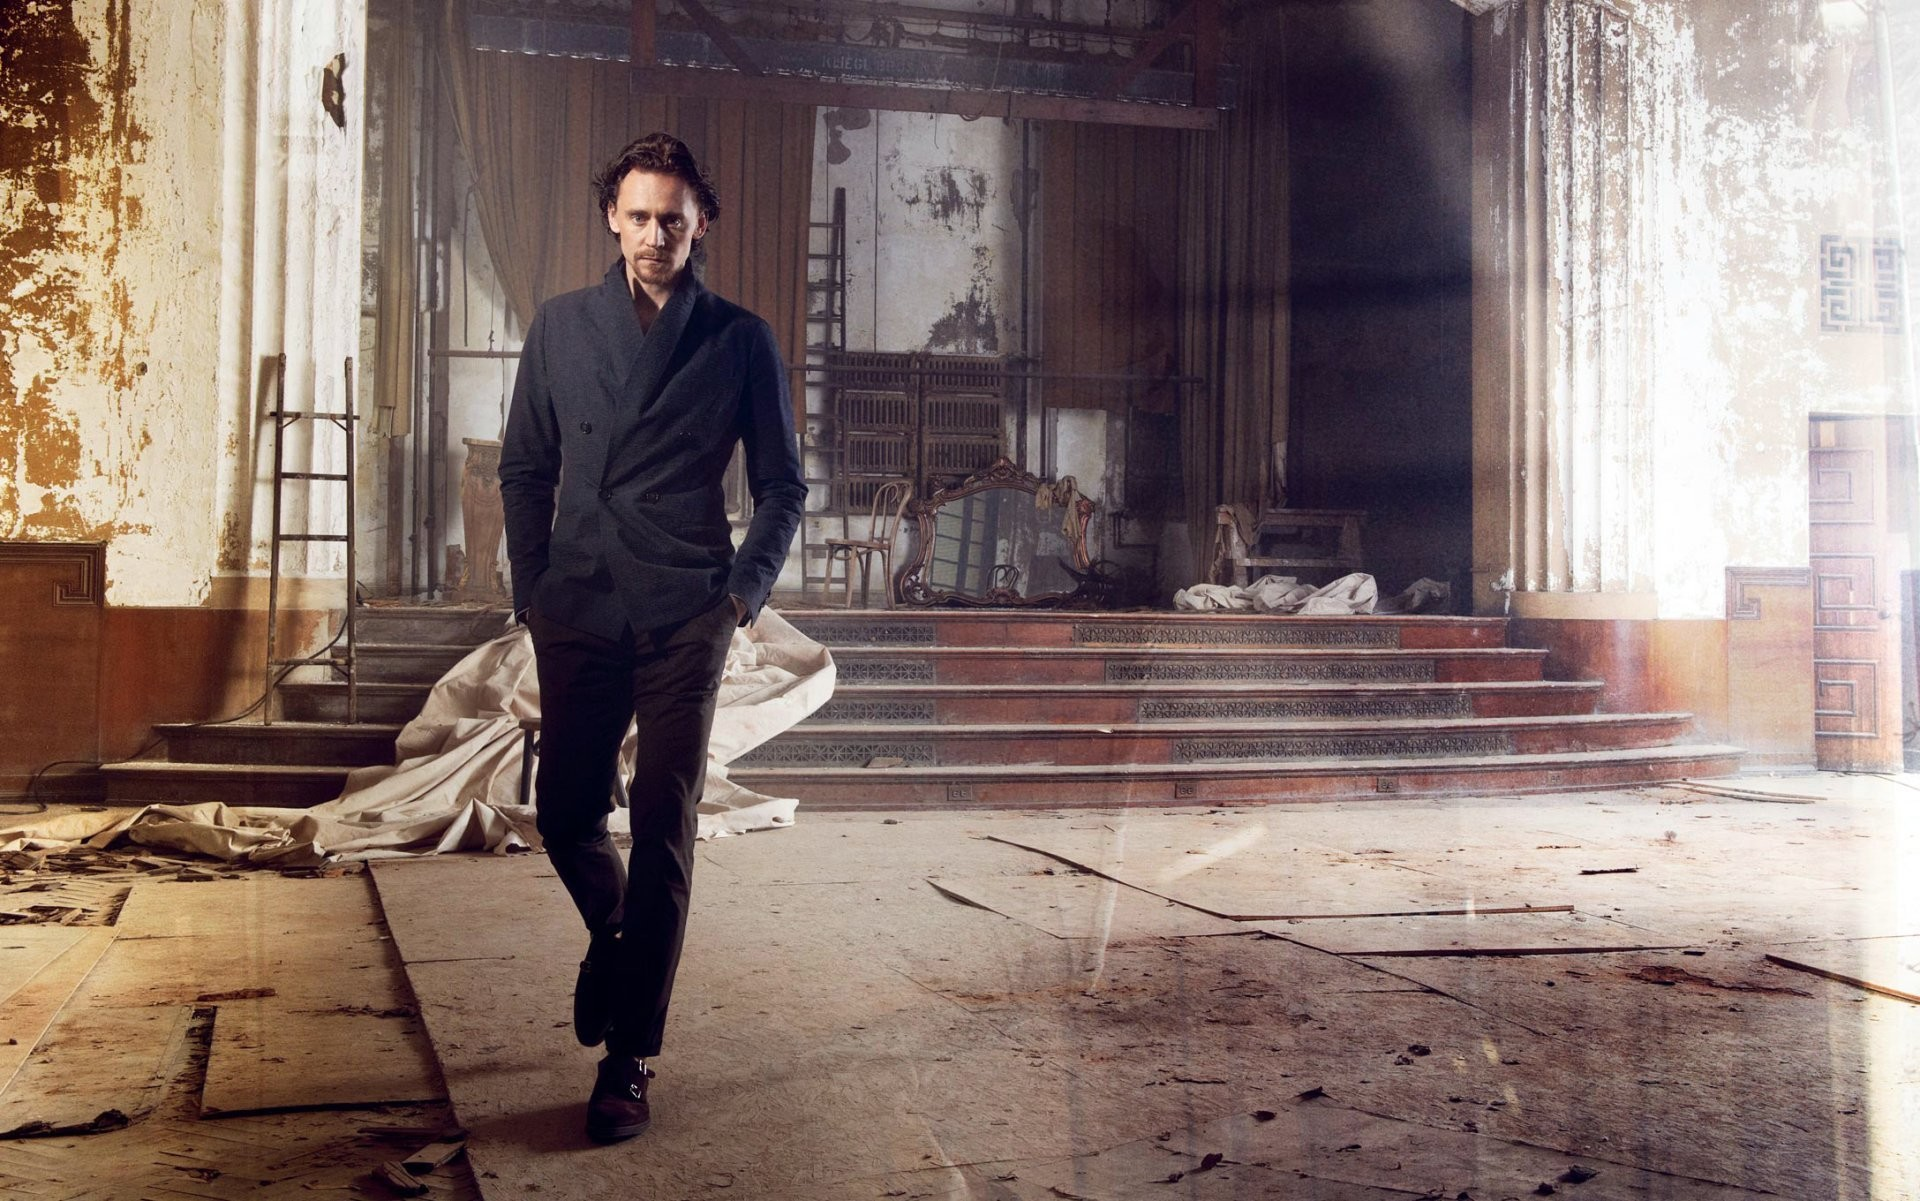 tom hiddleston tom hiddleston men jacket actor stage abandoned